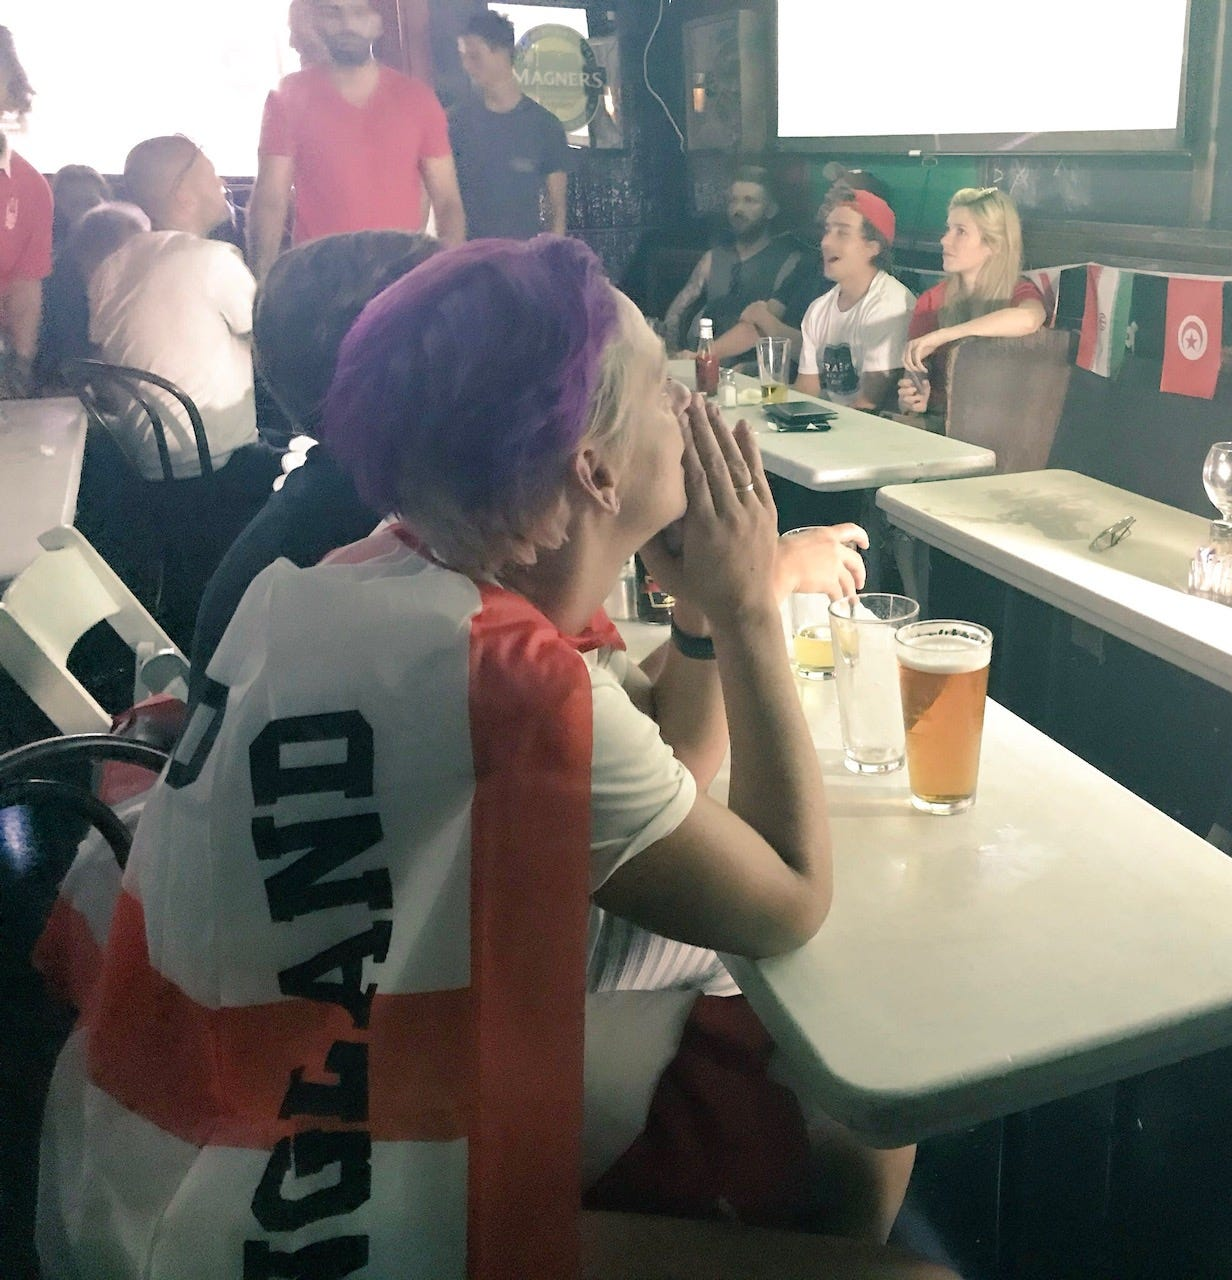 What it's like living through England's devastating World Cup loss at a British pub